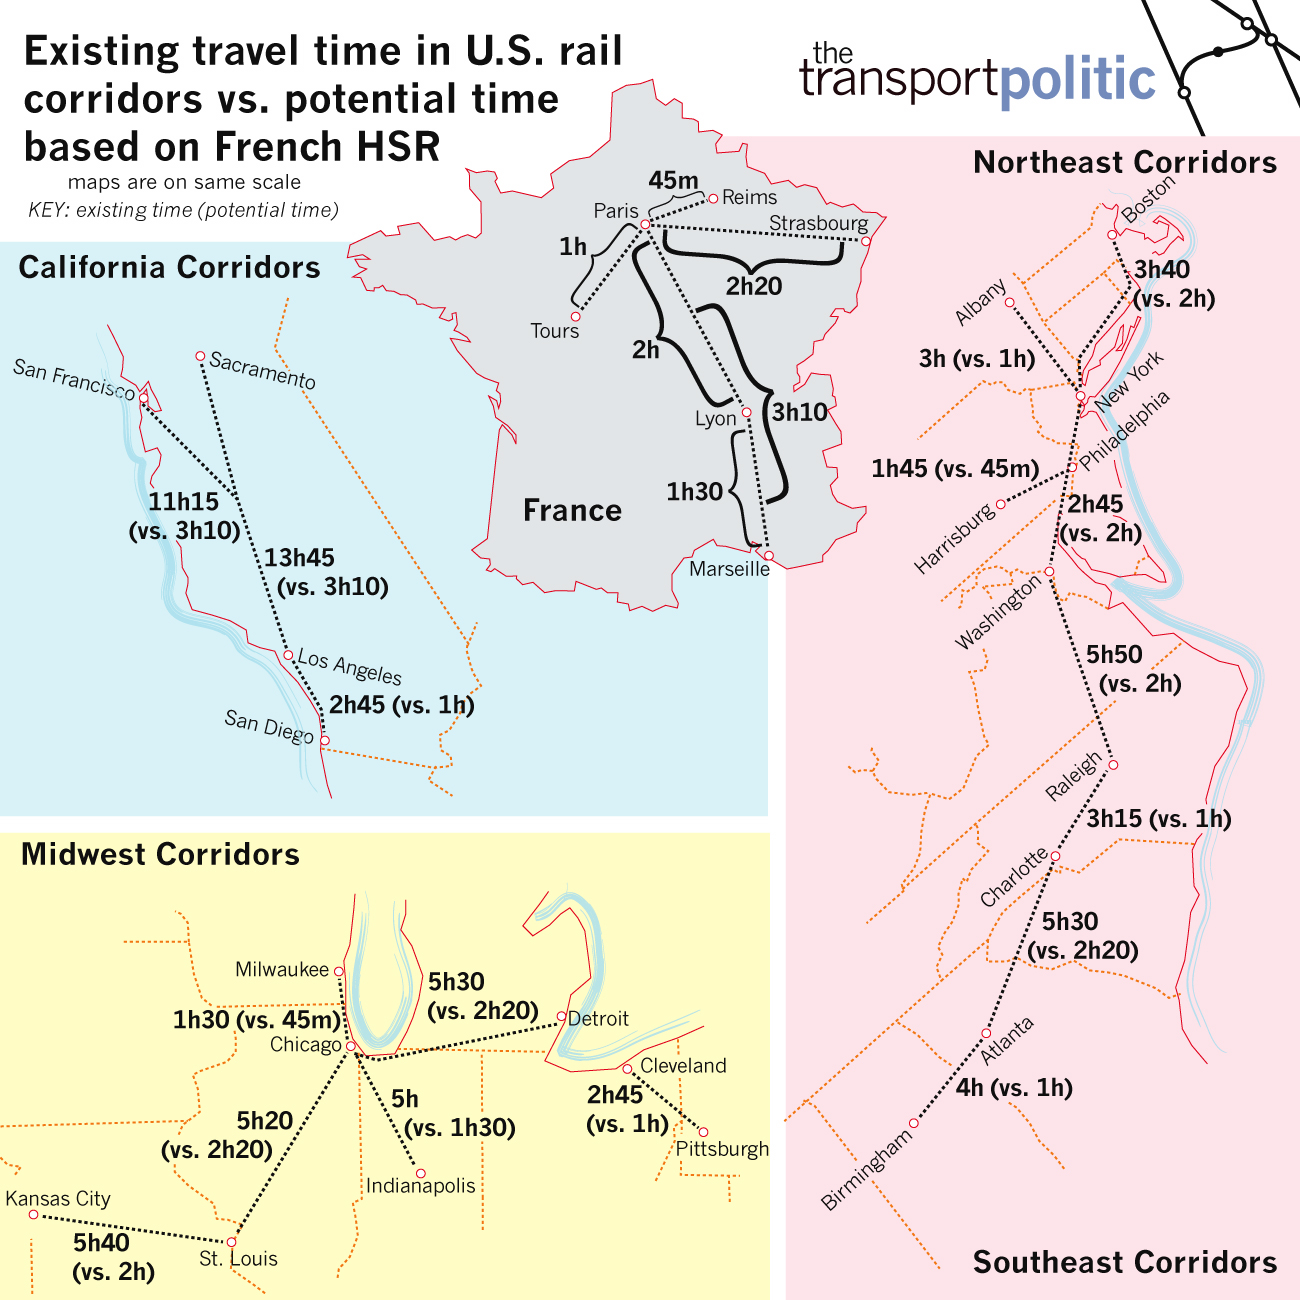 Comparing the TGV to United States Rail Corridors